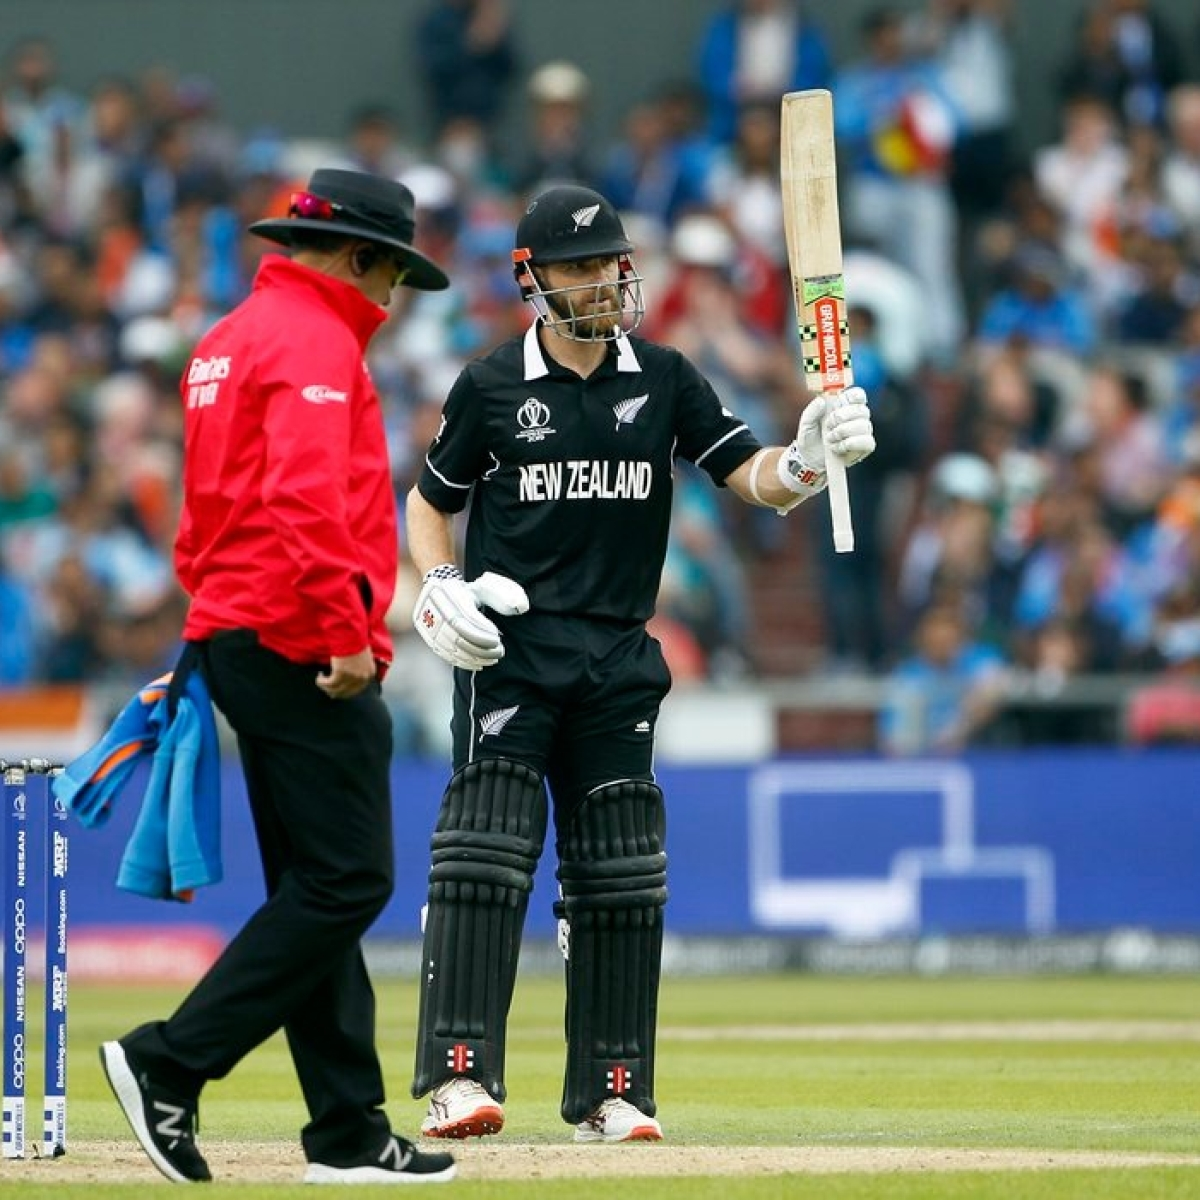 Hope Indian fans support New Zealand in World Cup 2019 final: Kane Williamson